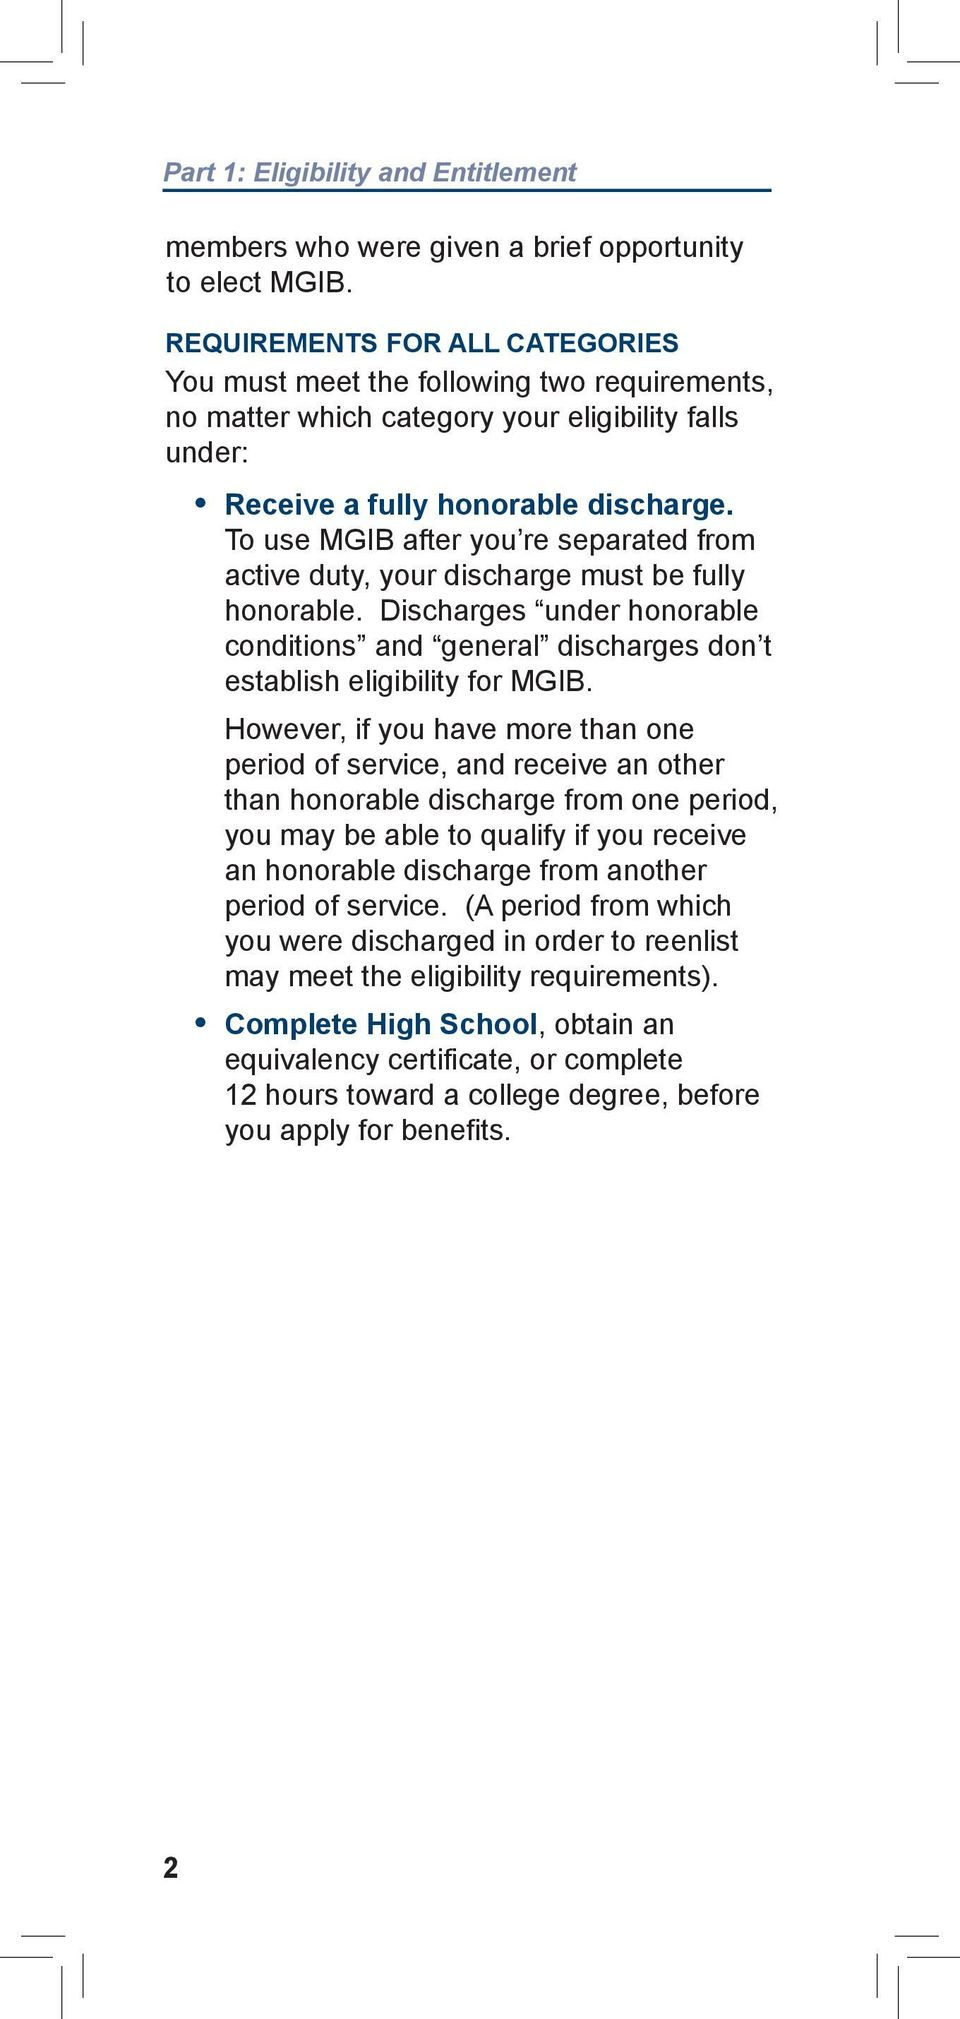 To use MGIB after you re separated from active duty, your discharge must be fully honorable. Discharges under honorable conditions and general discharges don t establish eligibility for MGIB.